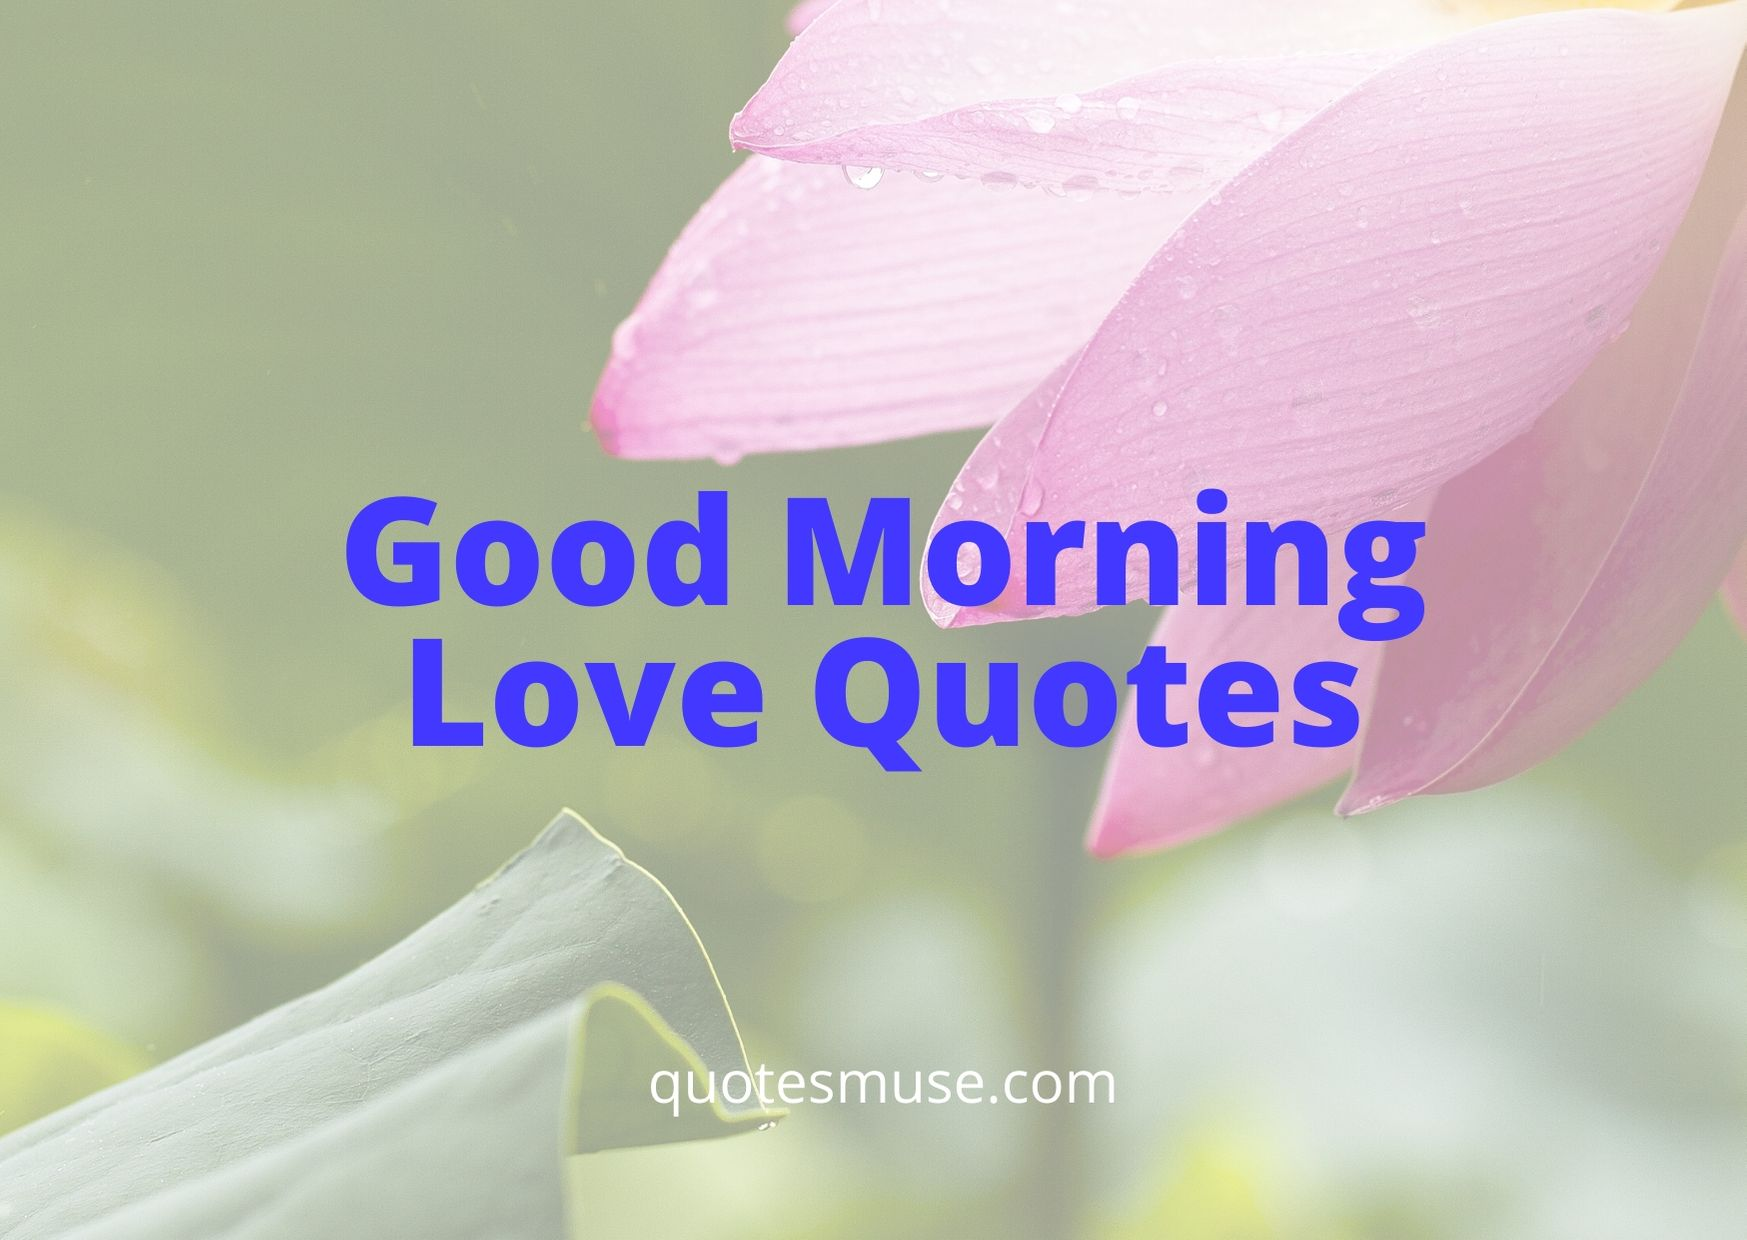 100+ Good Morning Love Quotes for the Dearest One